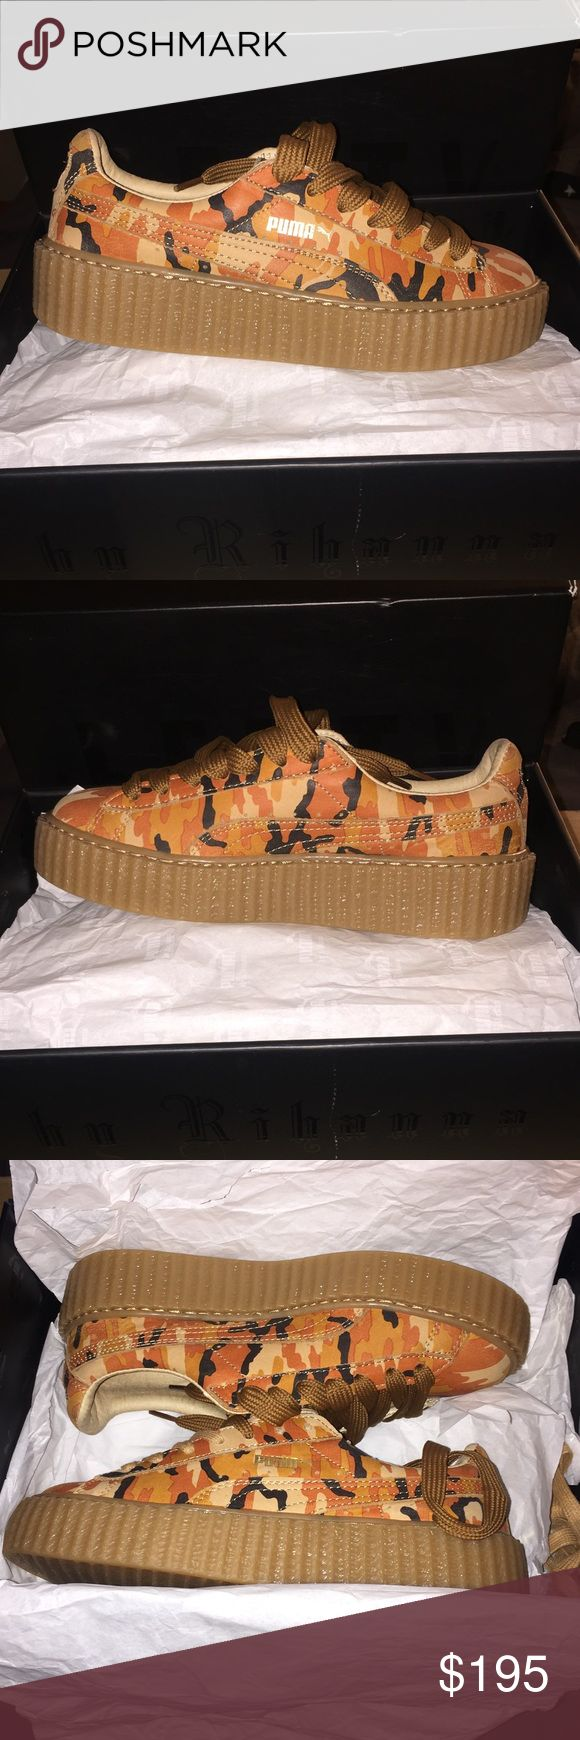 Rihanna Fenty Puma Camouflage Creeper Exclusive Brand New Creepers no longer available in stores Women Sz. 7 Puma Shoes Athletic Shoes